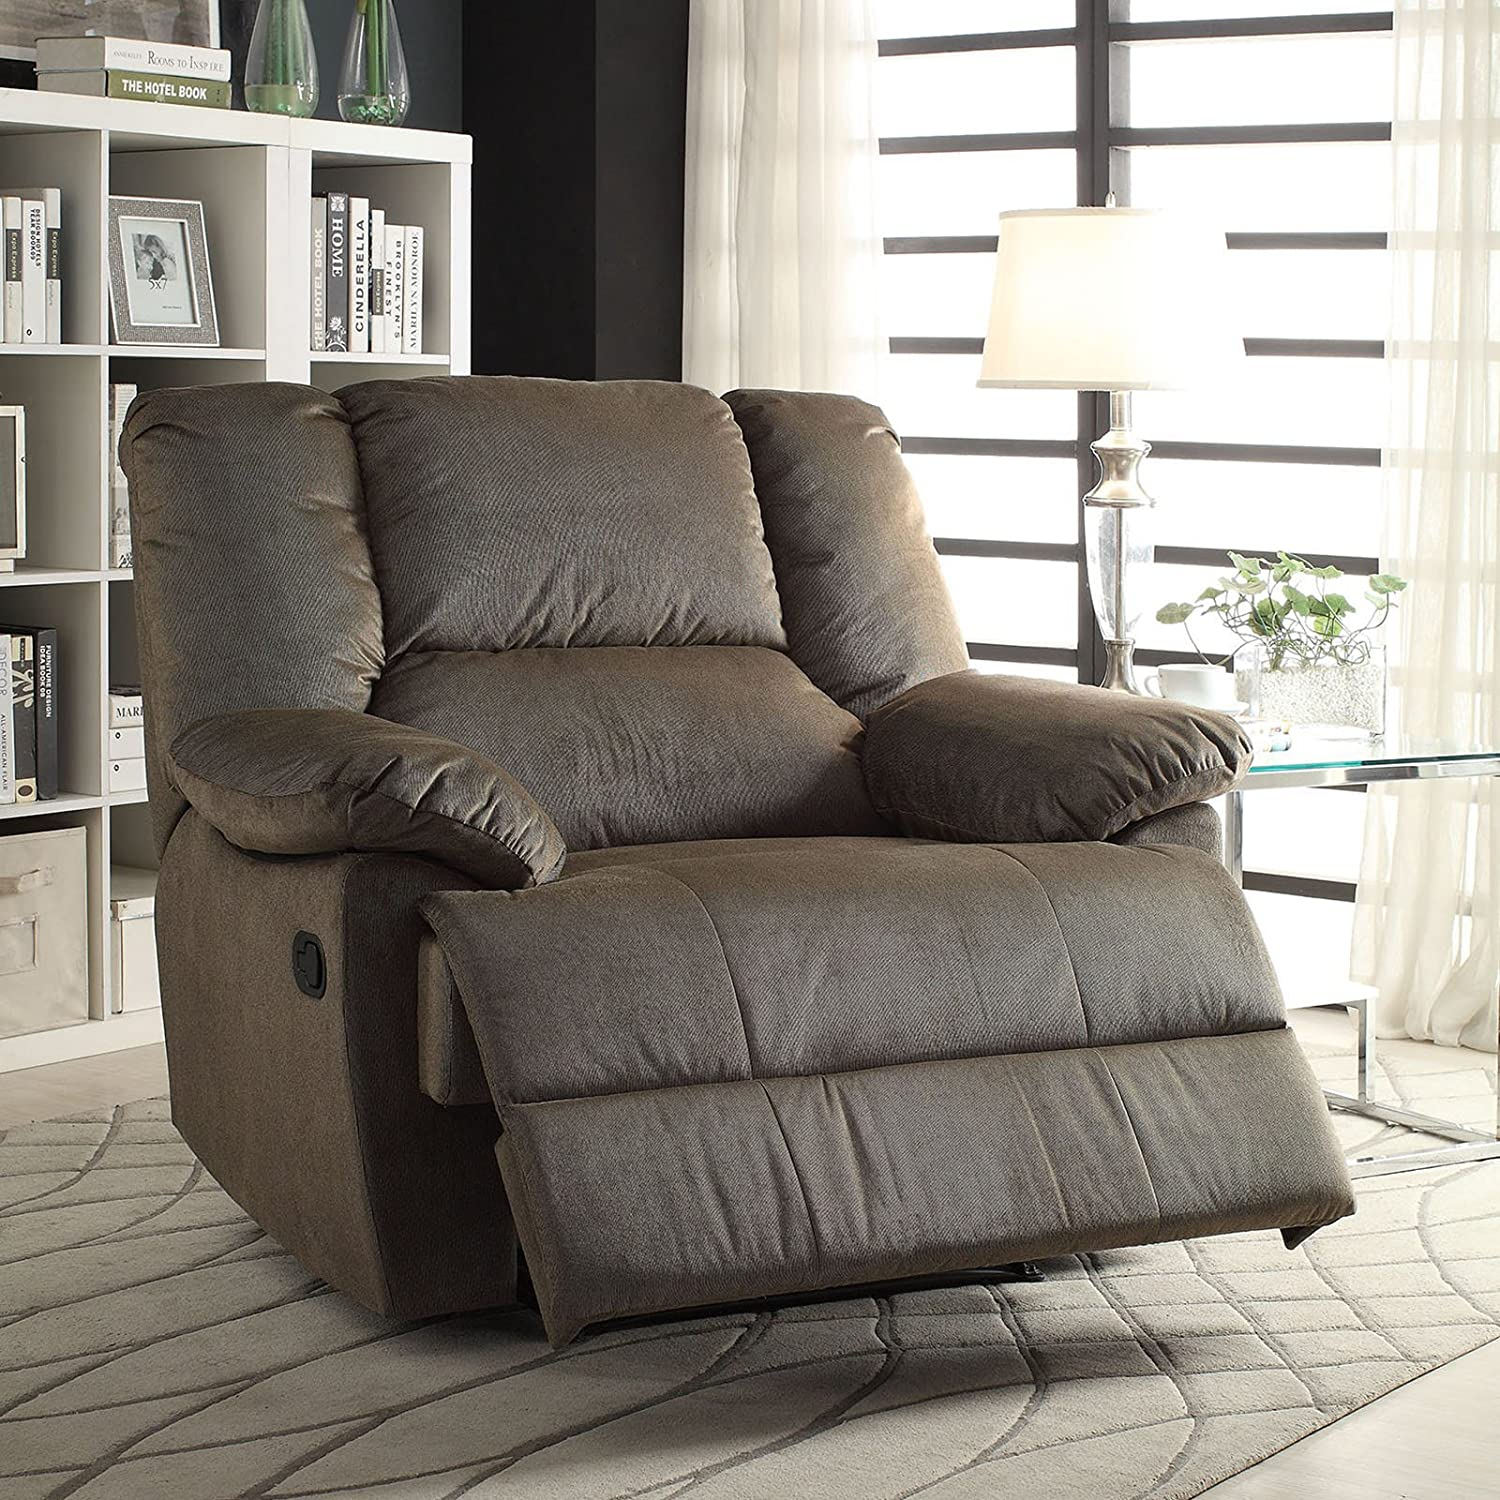 Amazon ACME Furniture Oliver Oversized Glider Recliner